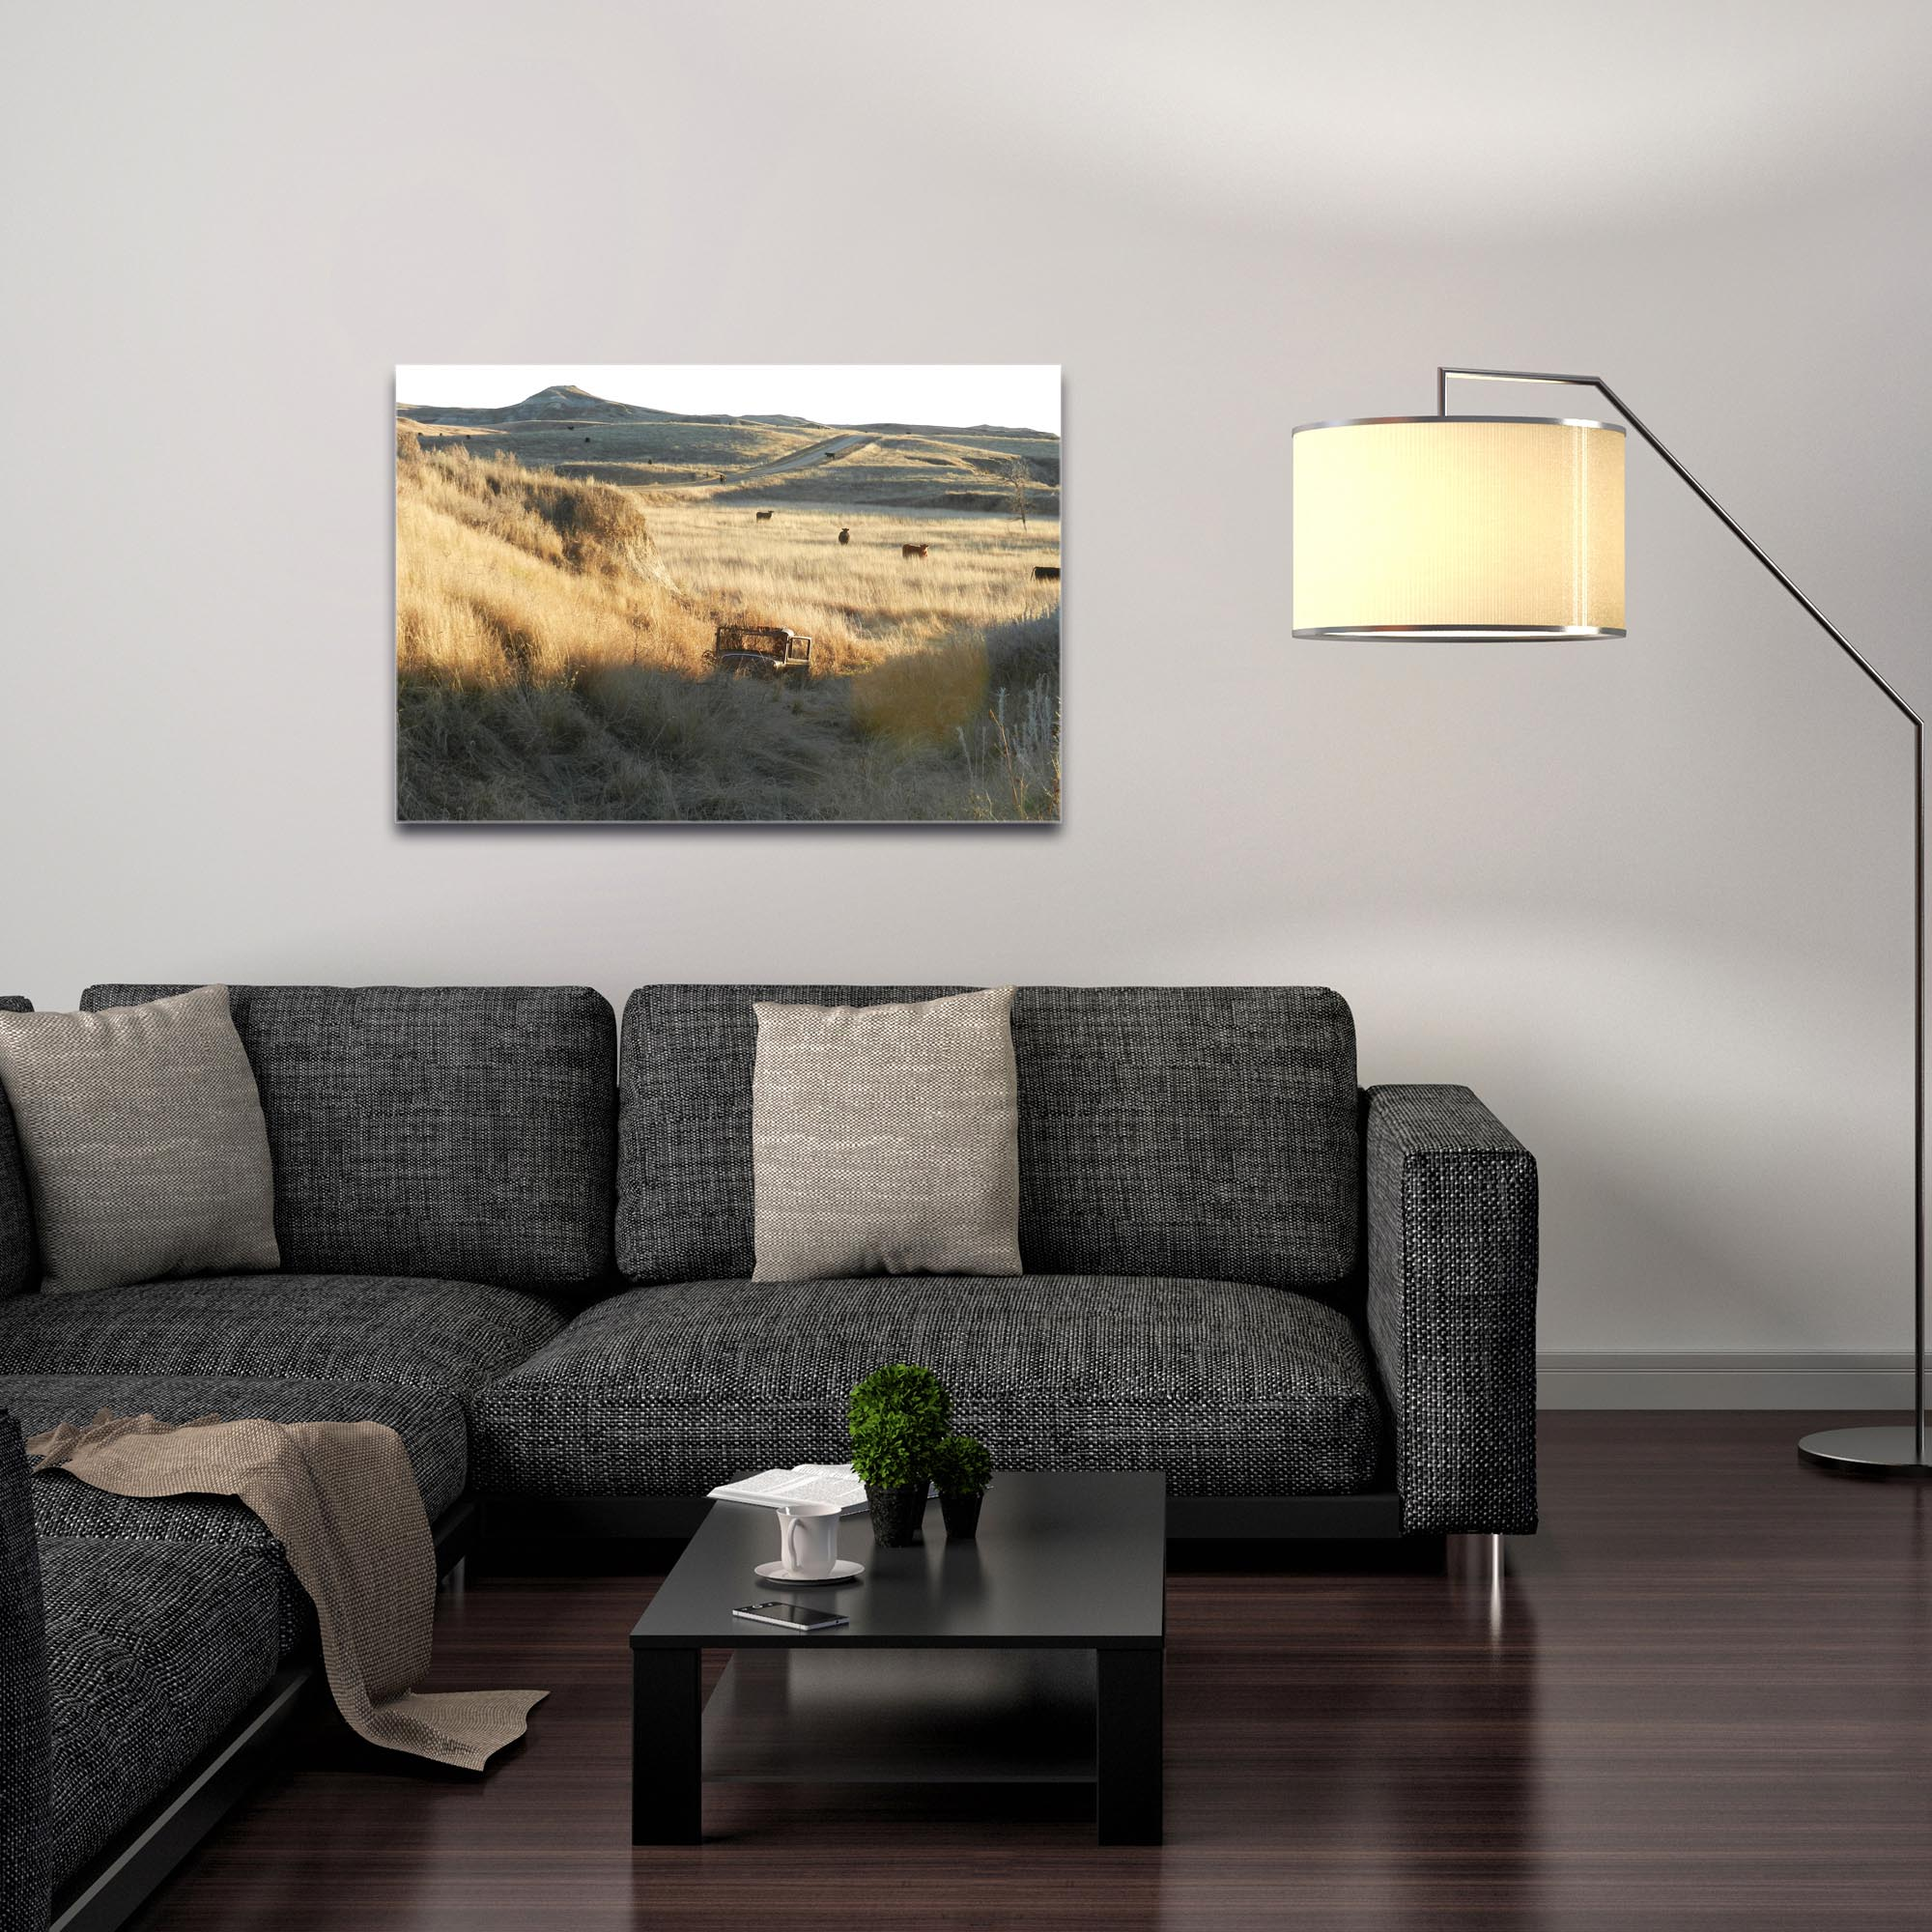 Western Wall Art 'Out West' - American West Decor on Metal or Plexiglass - Image 3